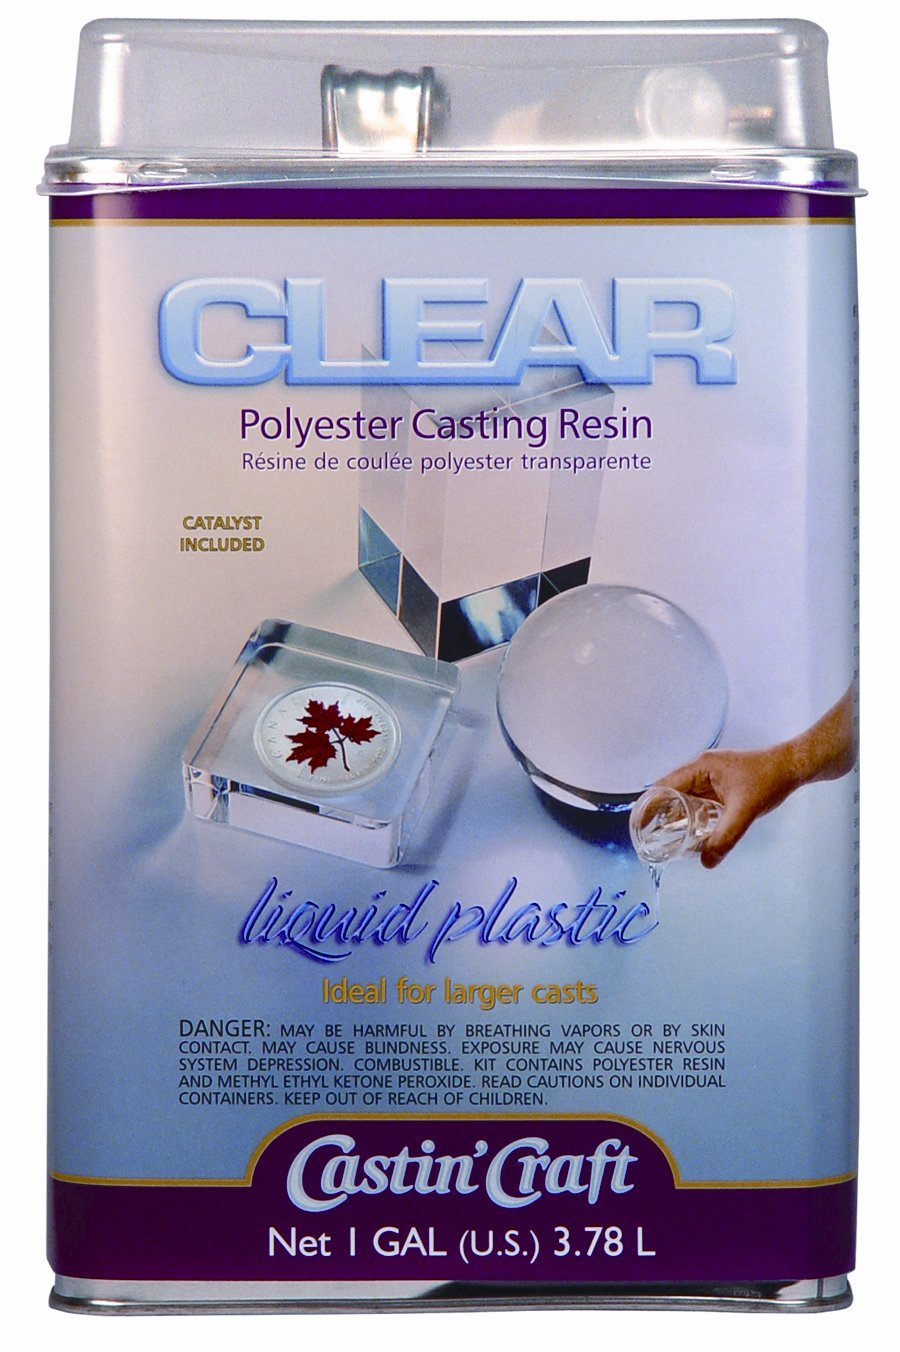 casting craft liquid plastic